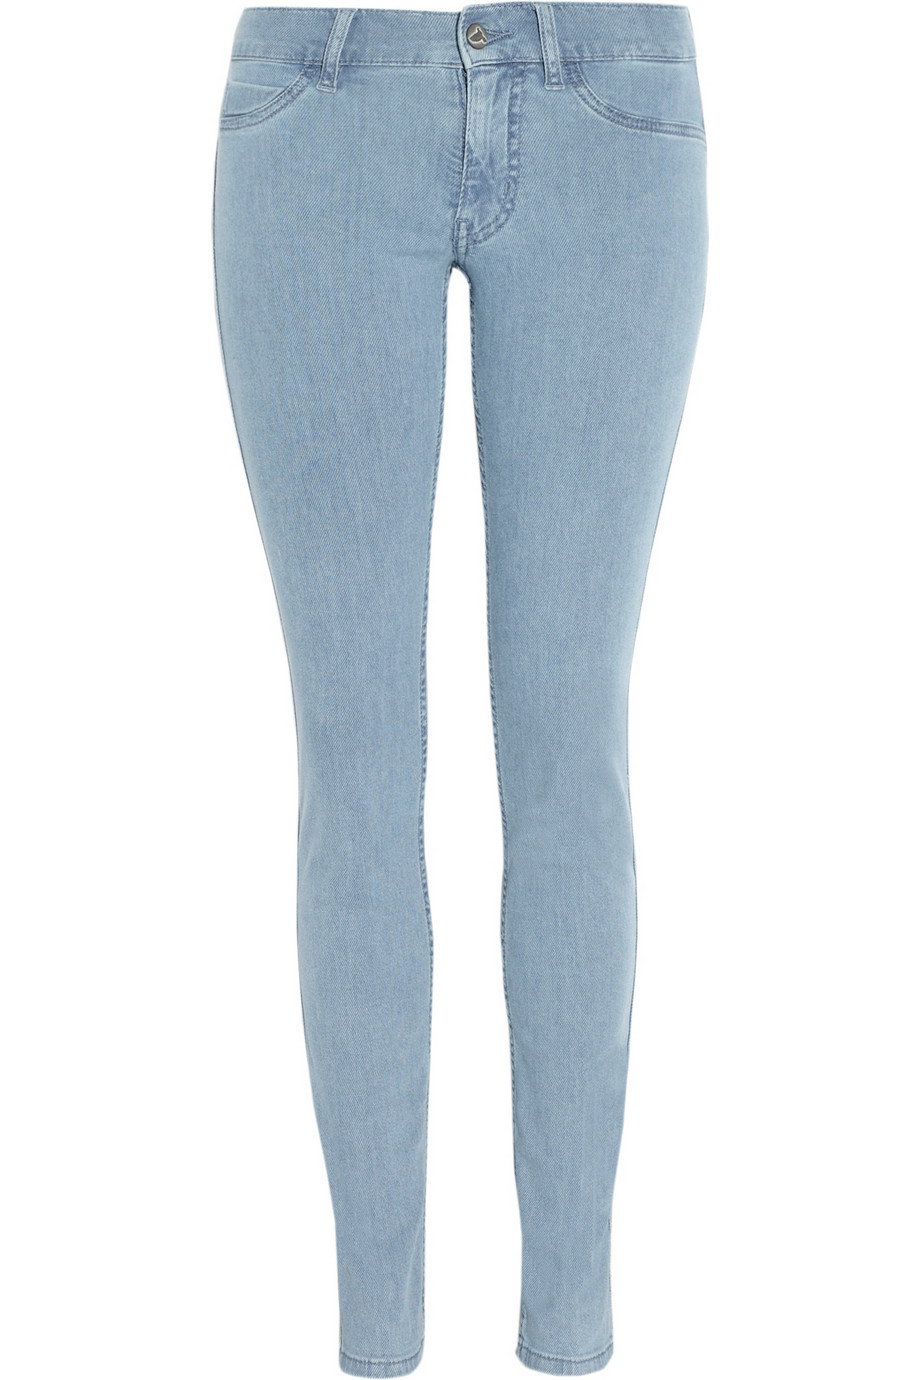 Low rise light blue skinny jeans – Global fashion jeans collection